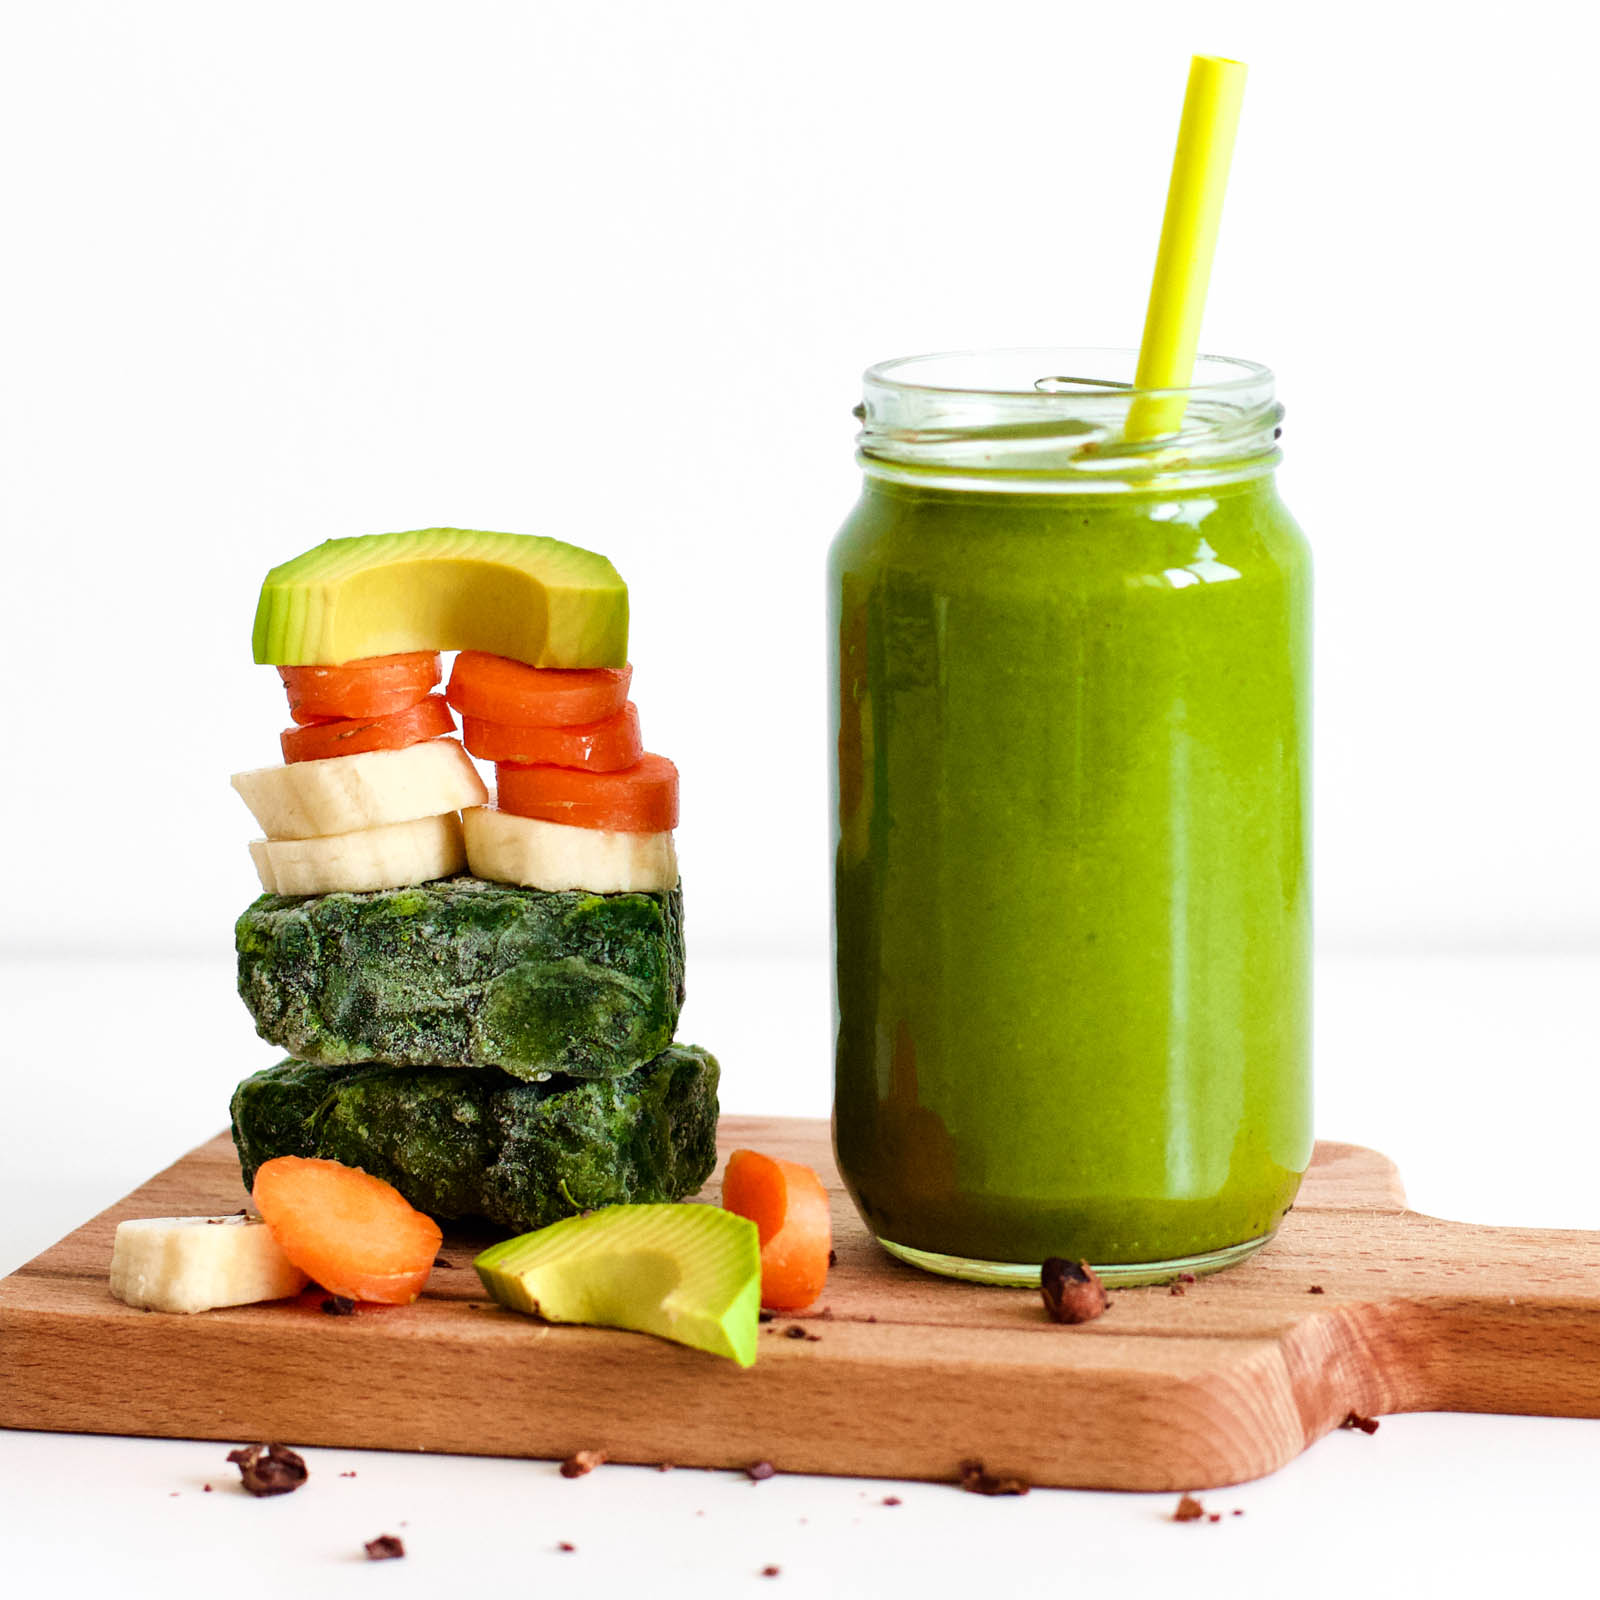 One serving of 5 Ingredients Simple Green Smoothie and vegetables stack on the side.